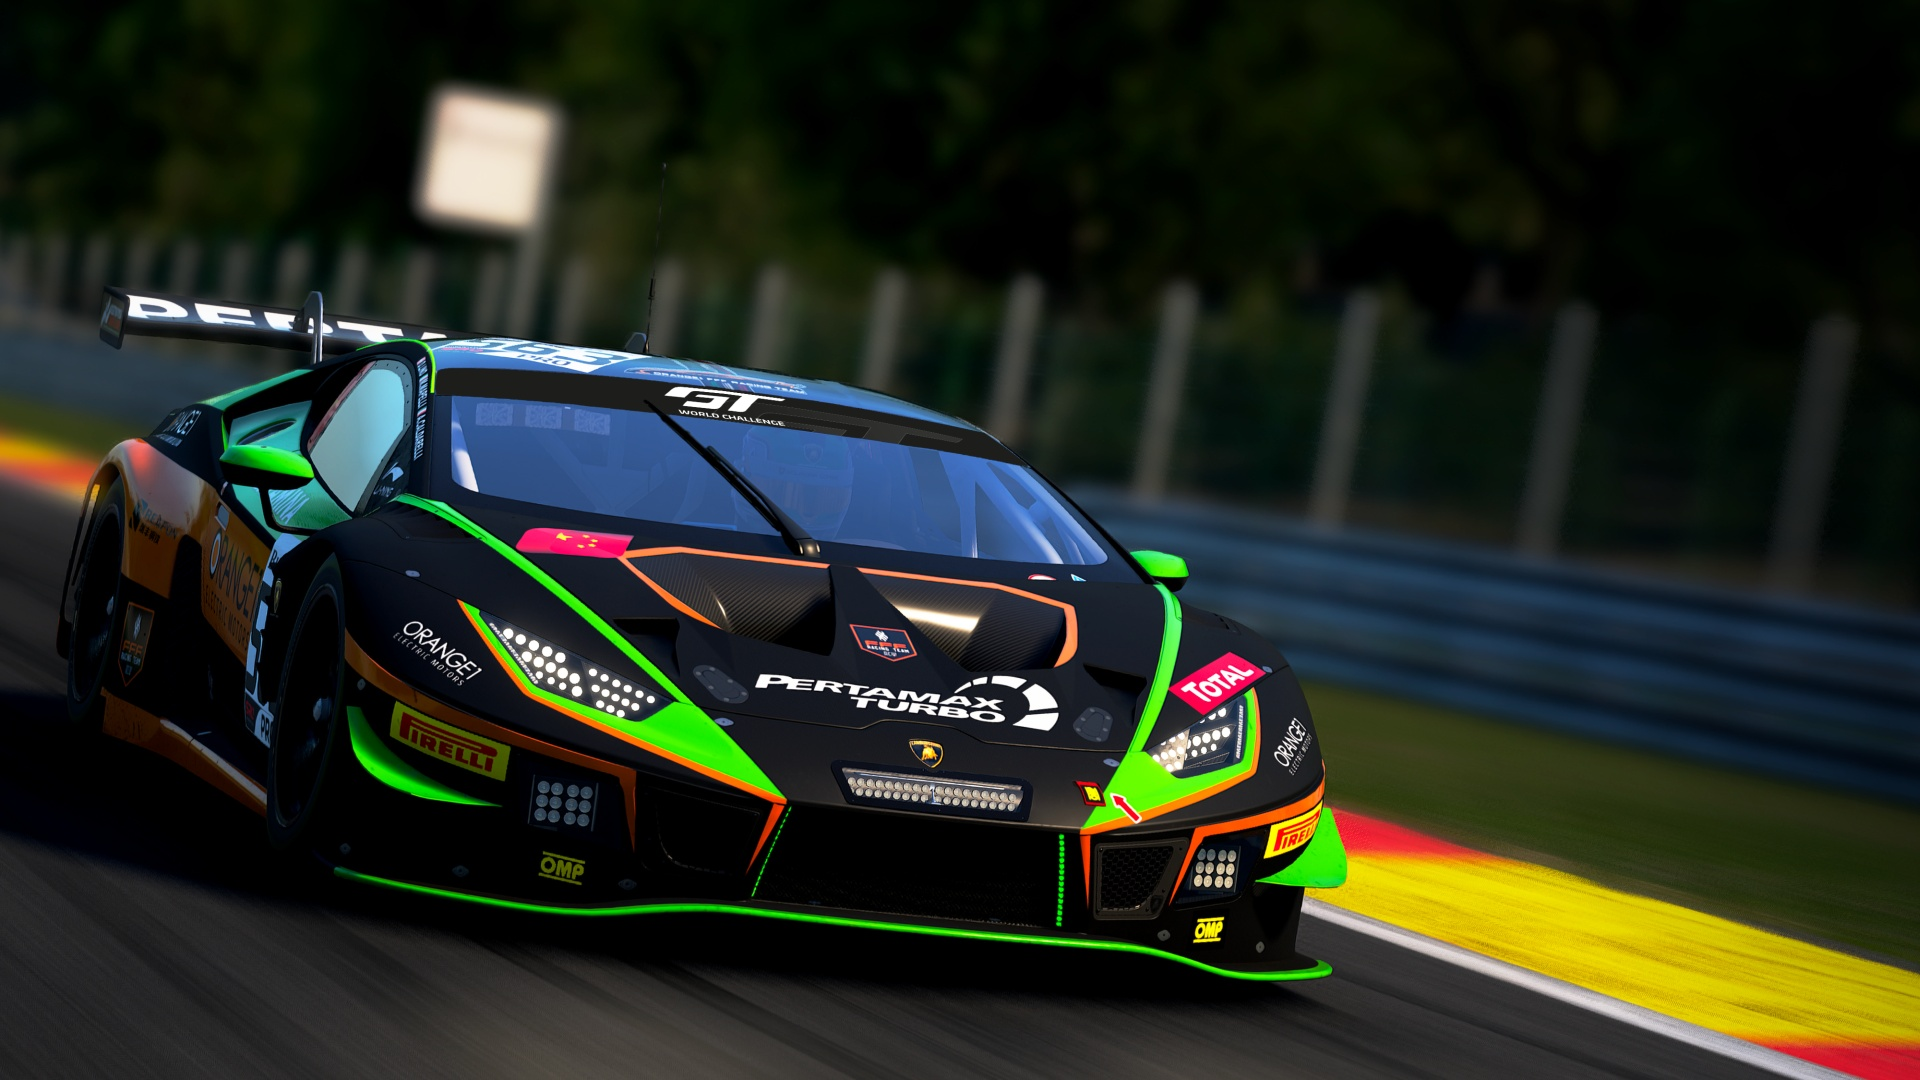 Assetto Corsa Competizione is Racing to Xbox One This June